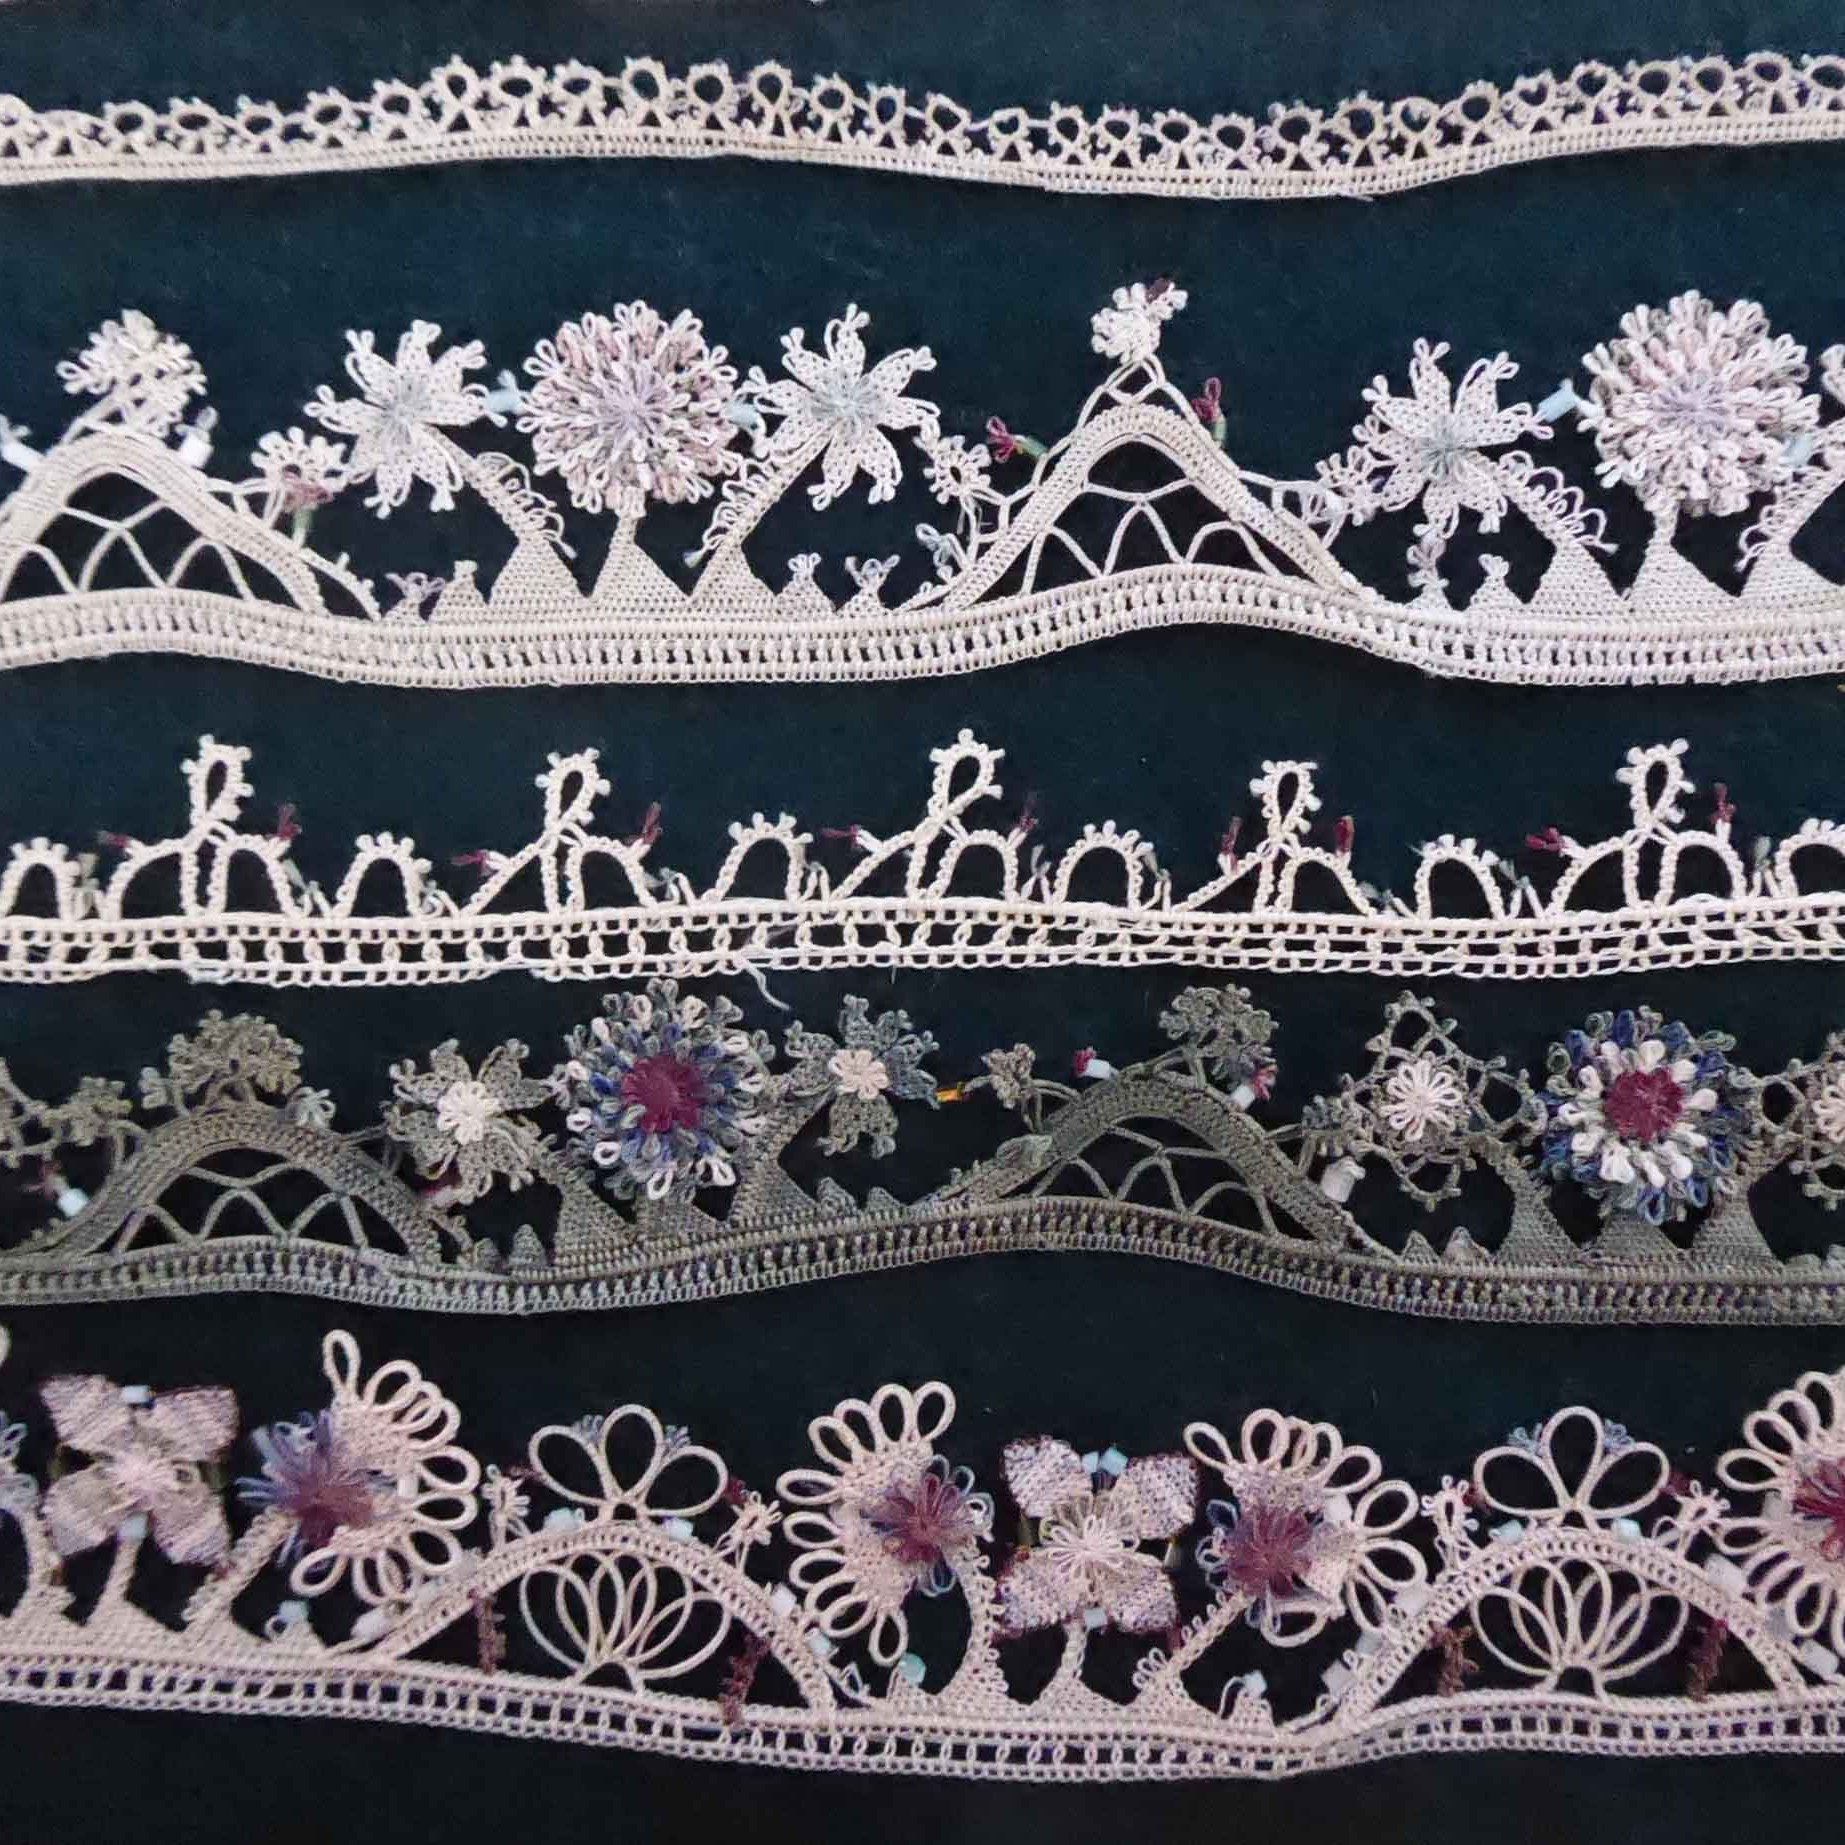 Thin bands of lace in white and pink